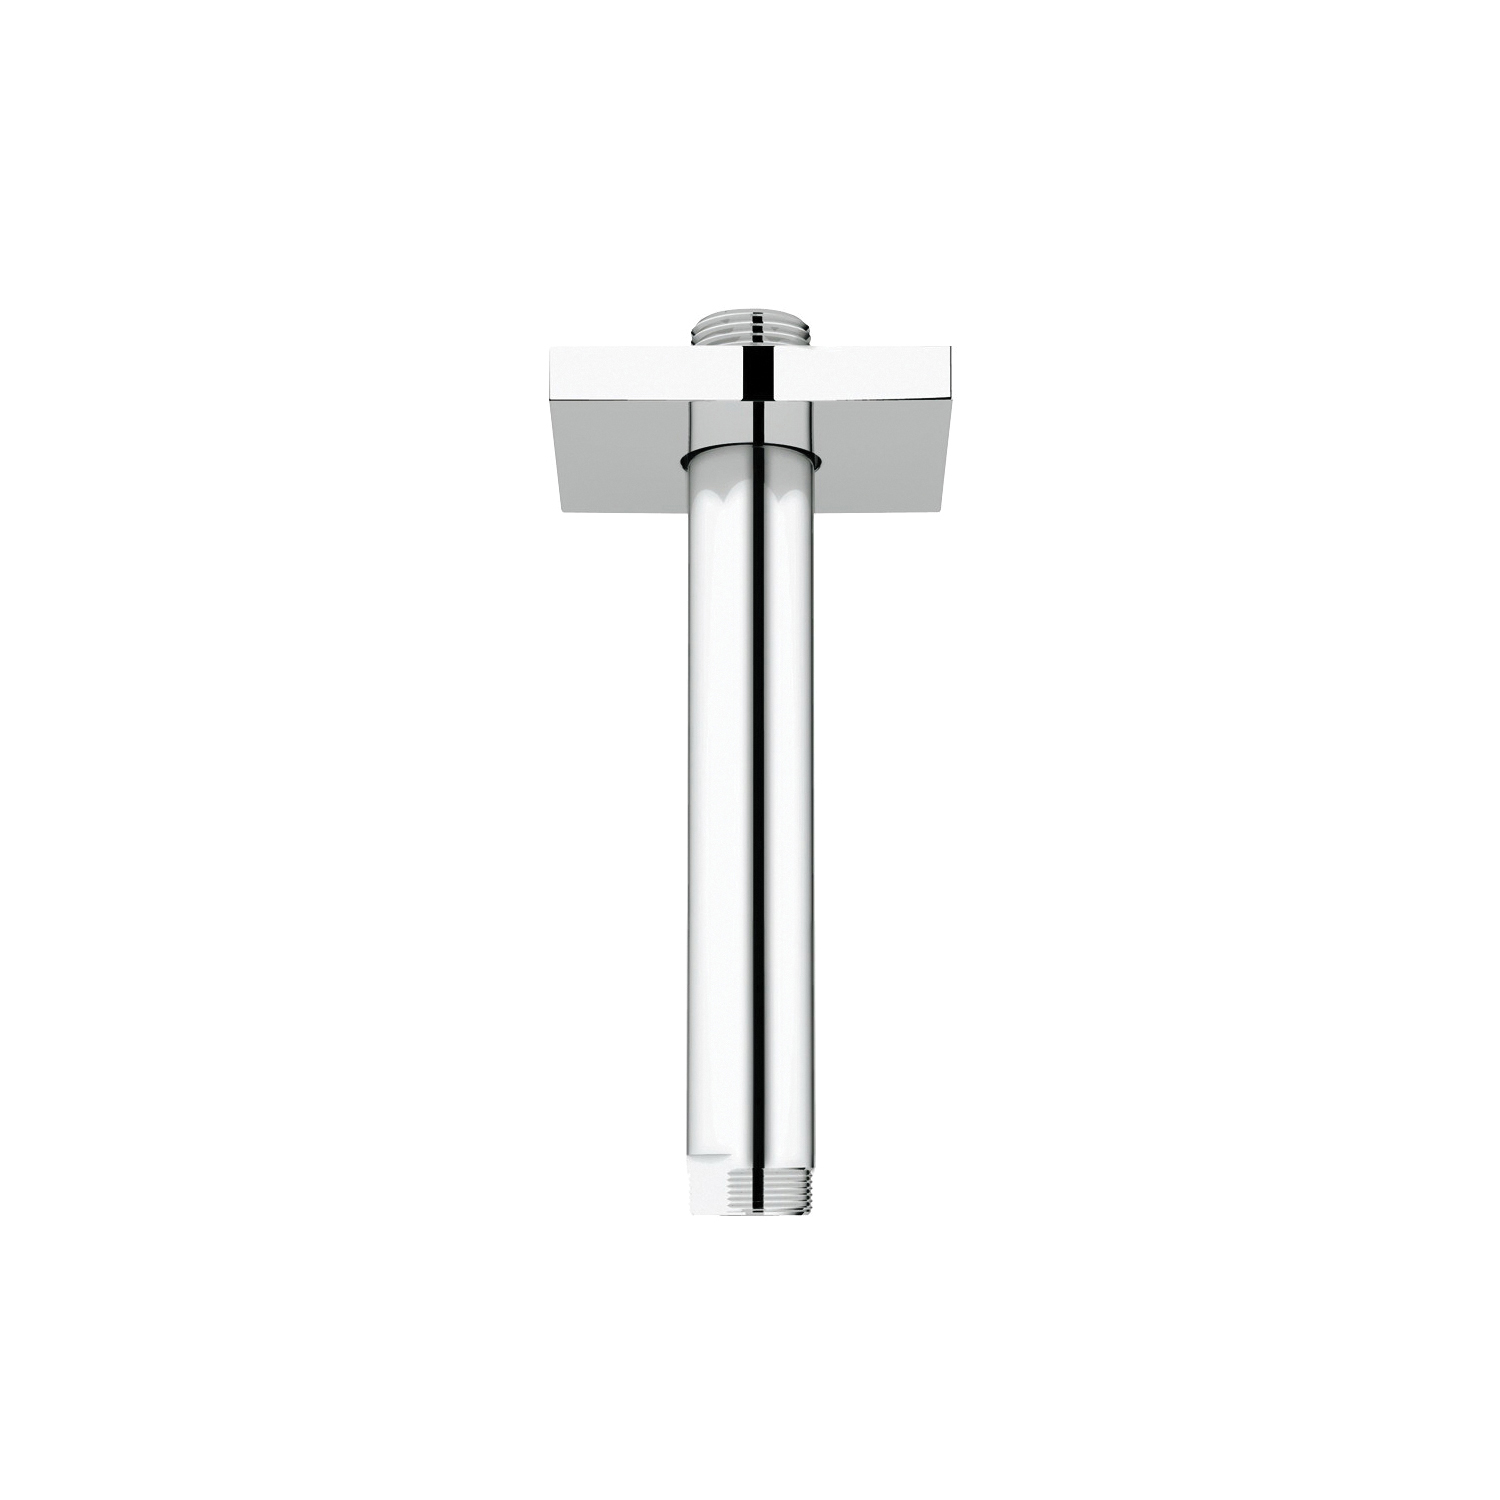 GROHE 27486000 Rainshower® Ceiling Shower Arm With Square Flange, 6 in L, 1/2 in NPT, Import